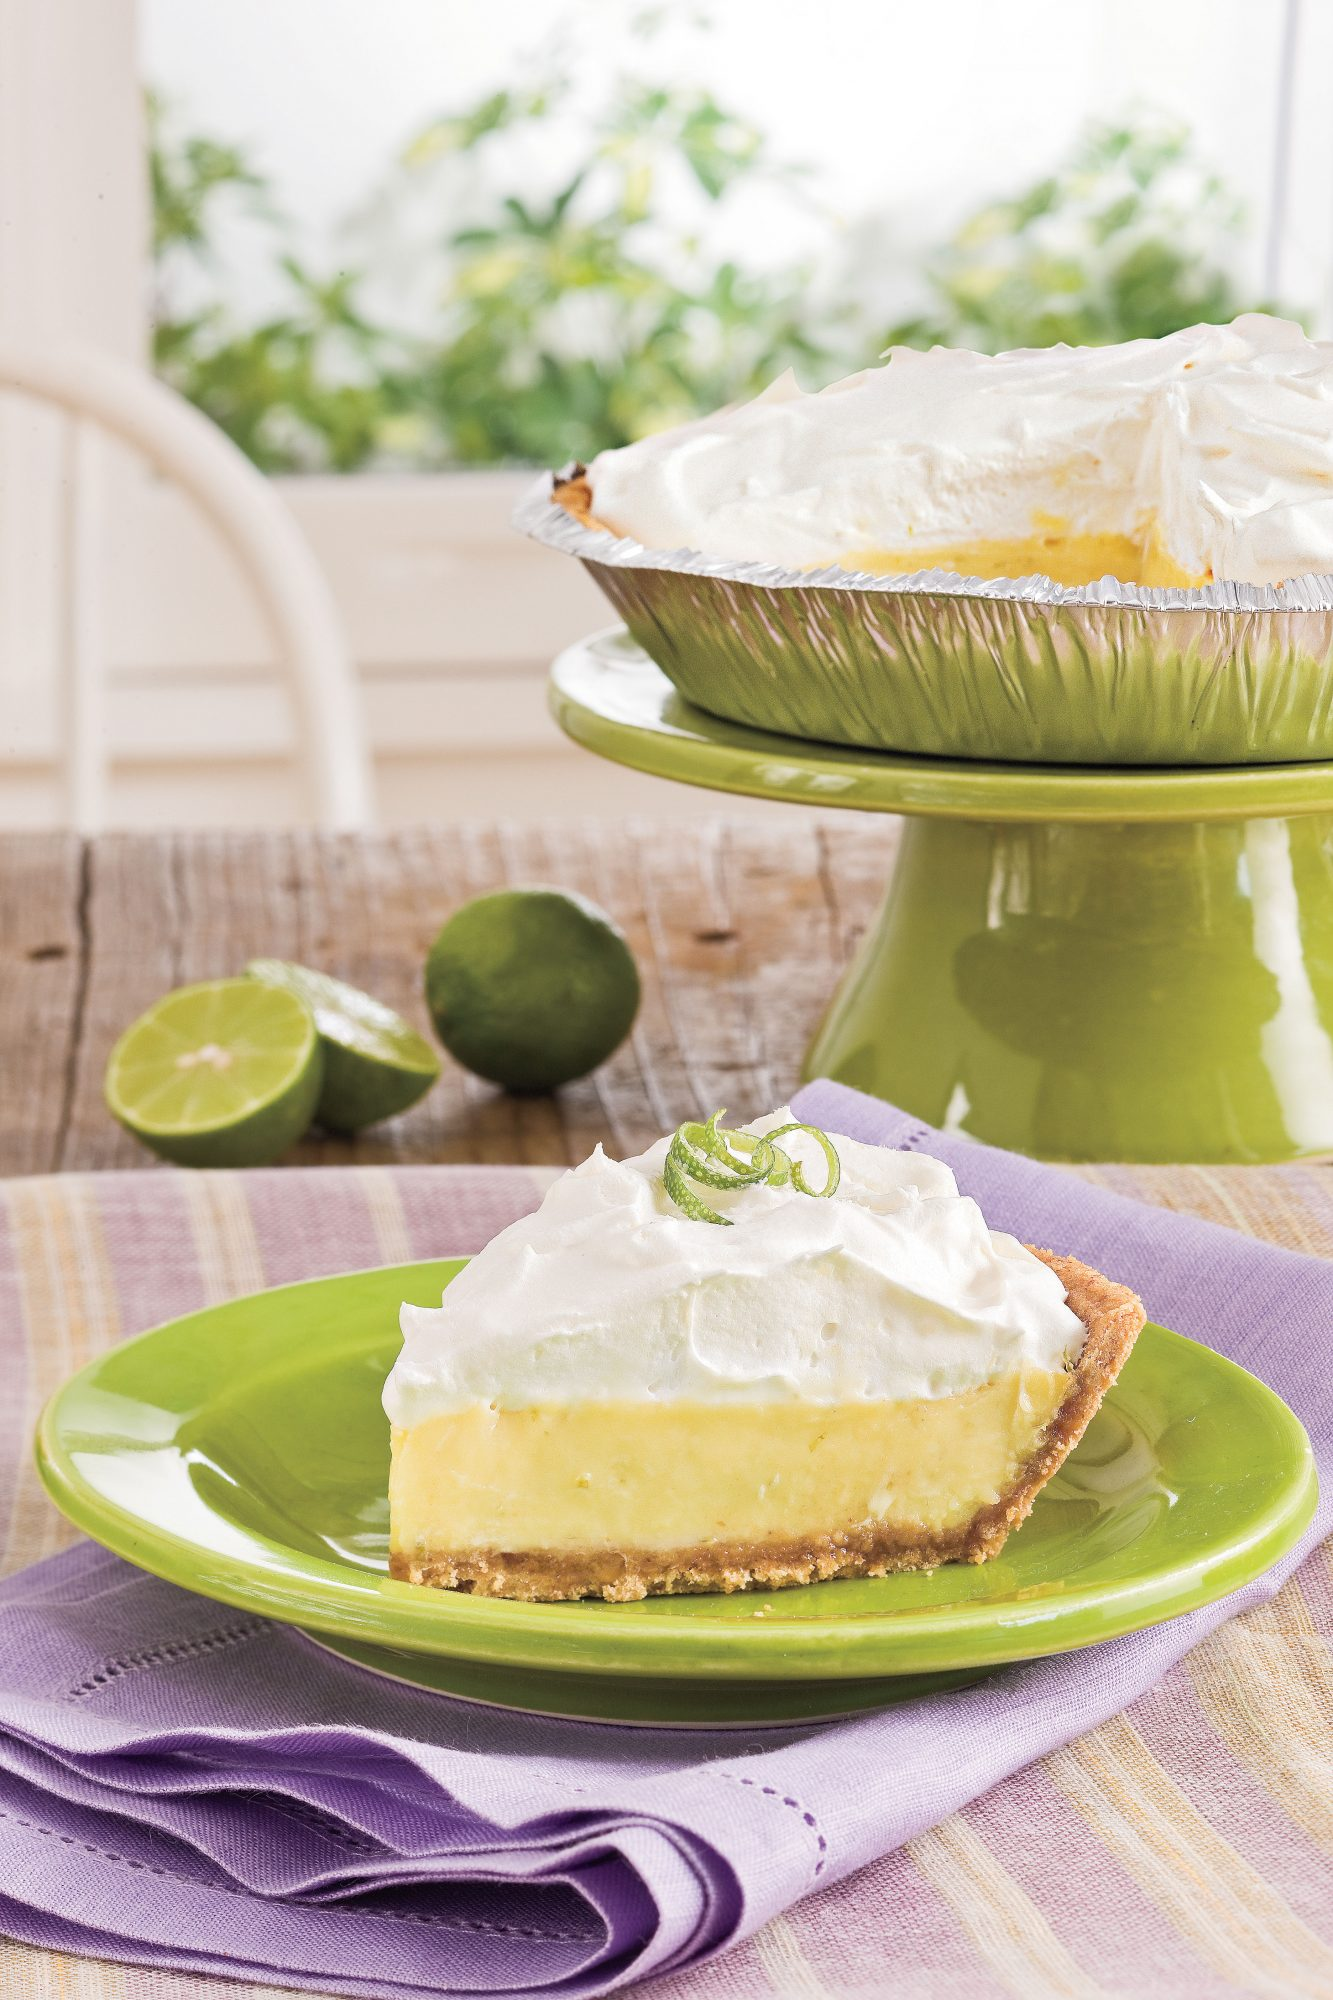 Old fashioned key lime pie